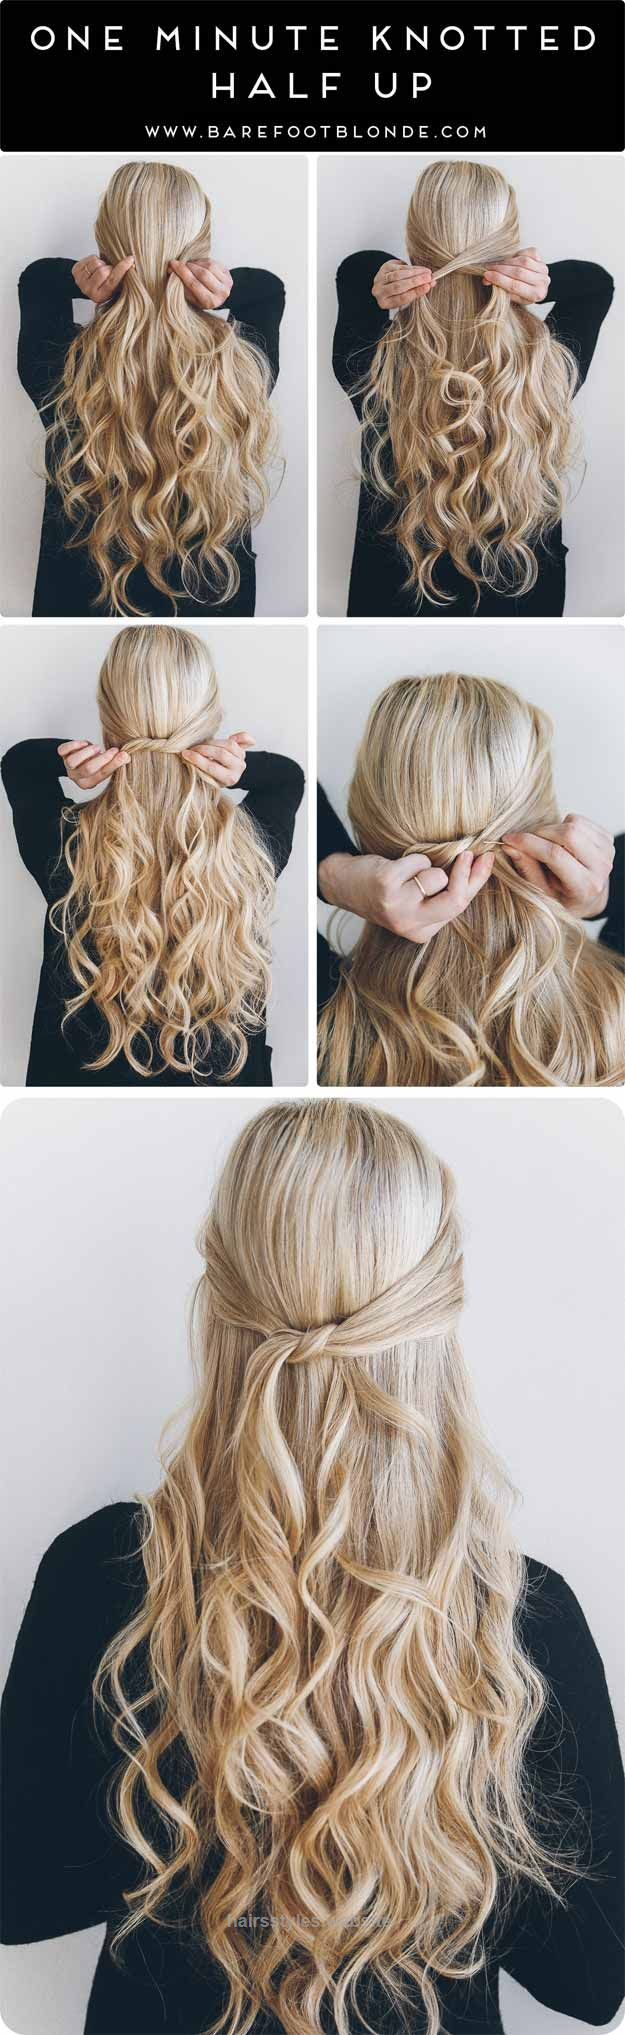 Neat Best 3 Minute Hairstyles – 3 Minute Knotted Half Up – Quick